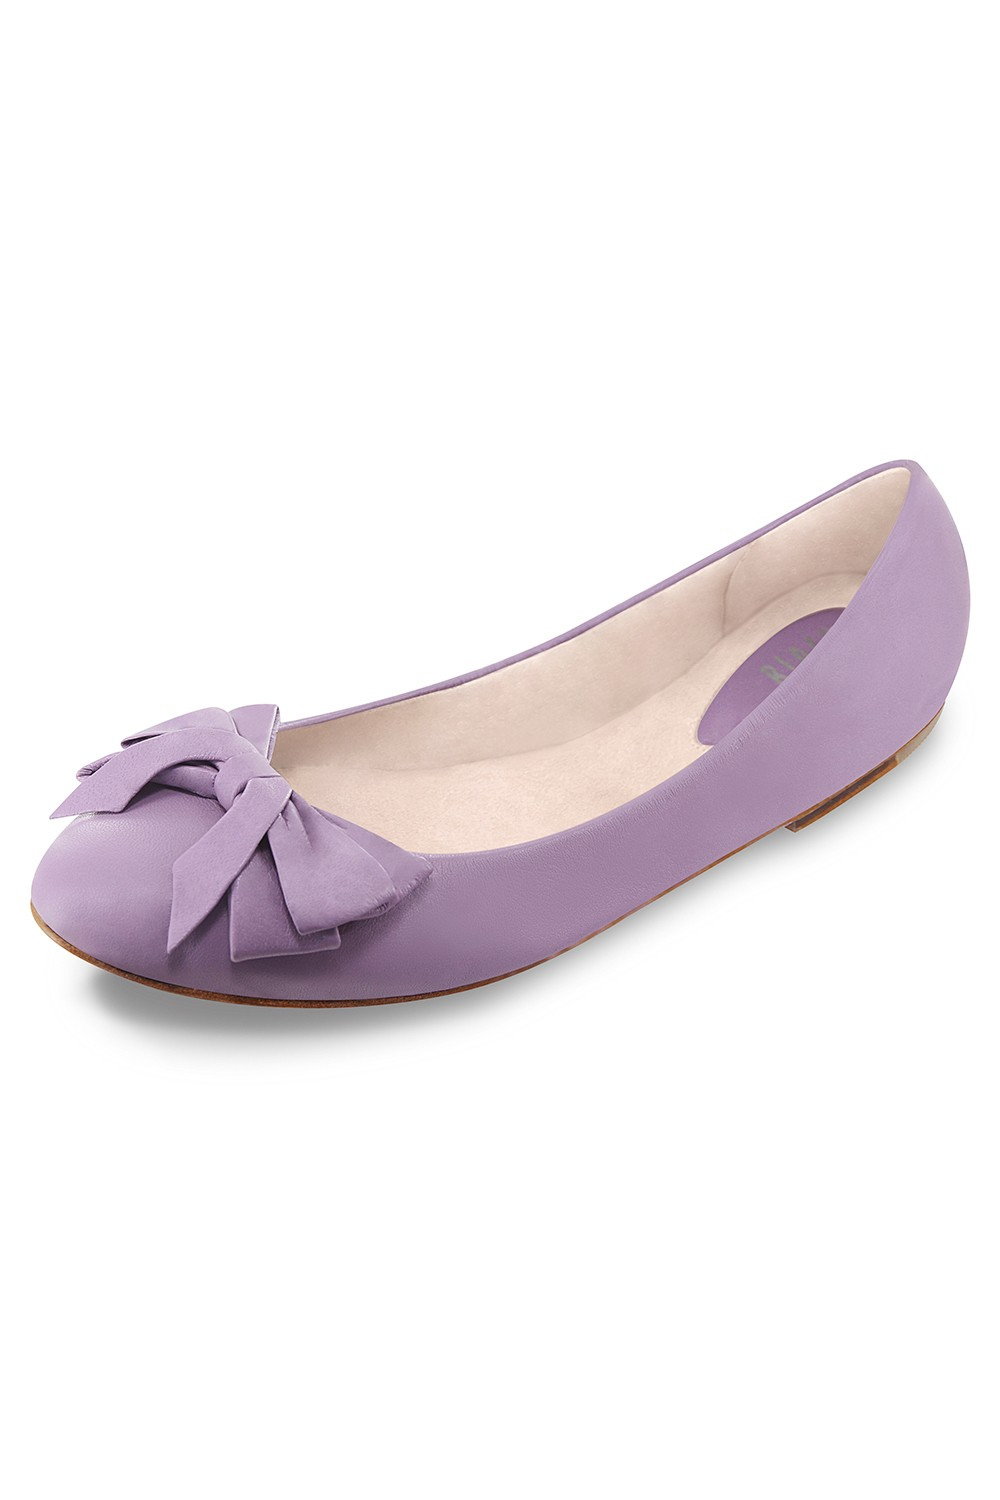 Bloch Woven Round-Toe Flats outlet shop for buy cheap in China cheap new styles cheap excellent fQYM3pH